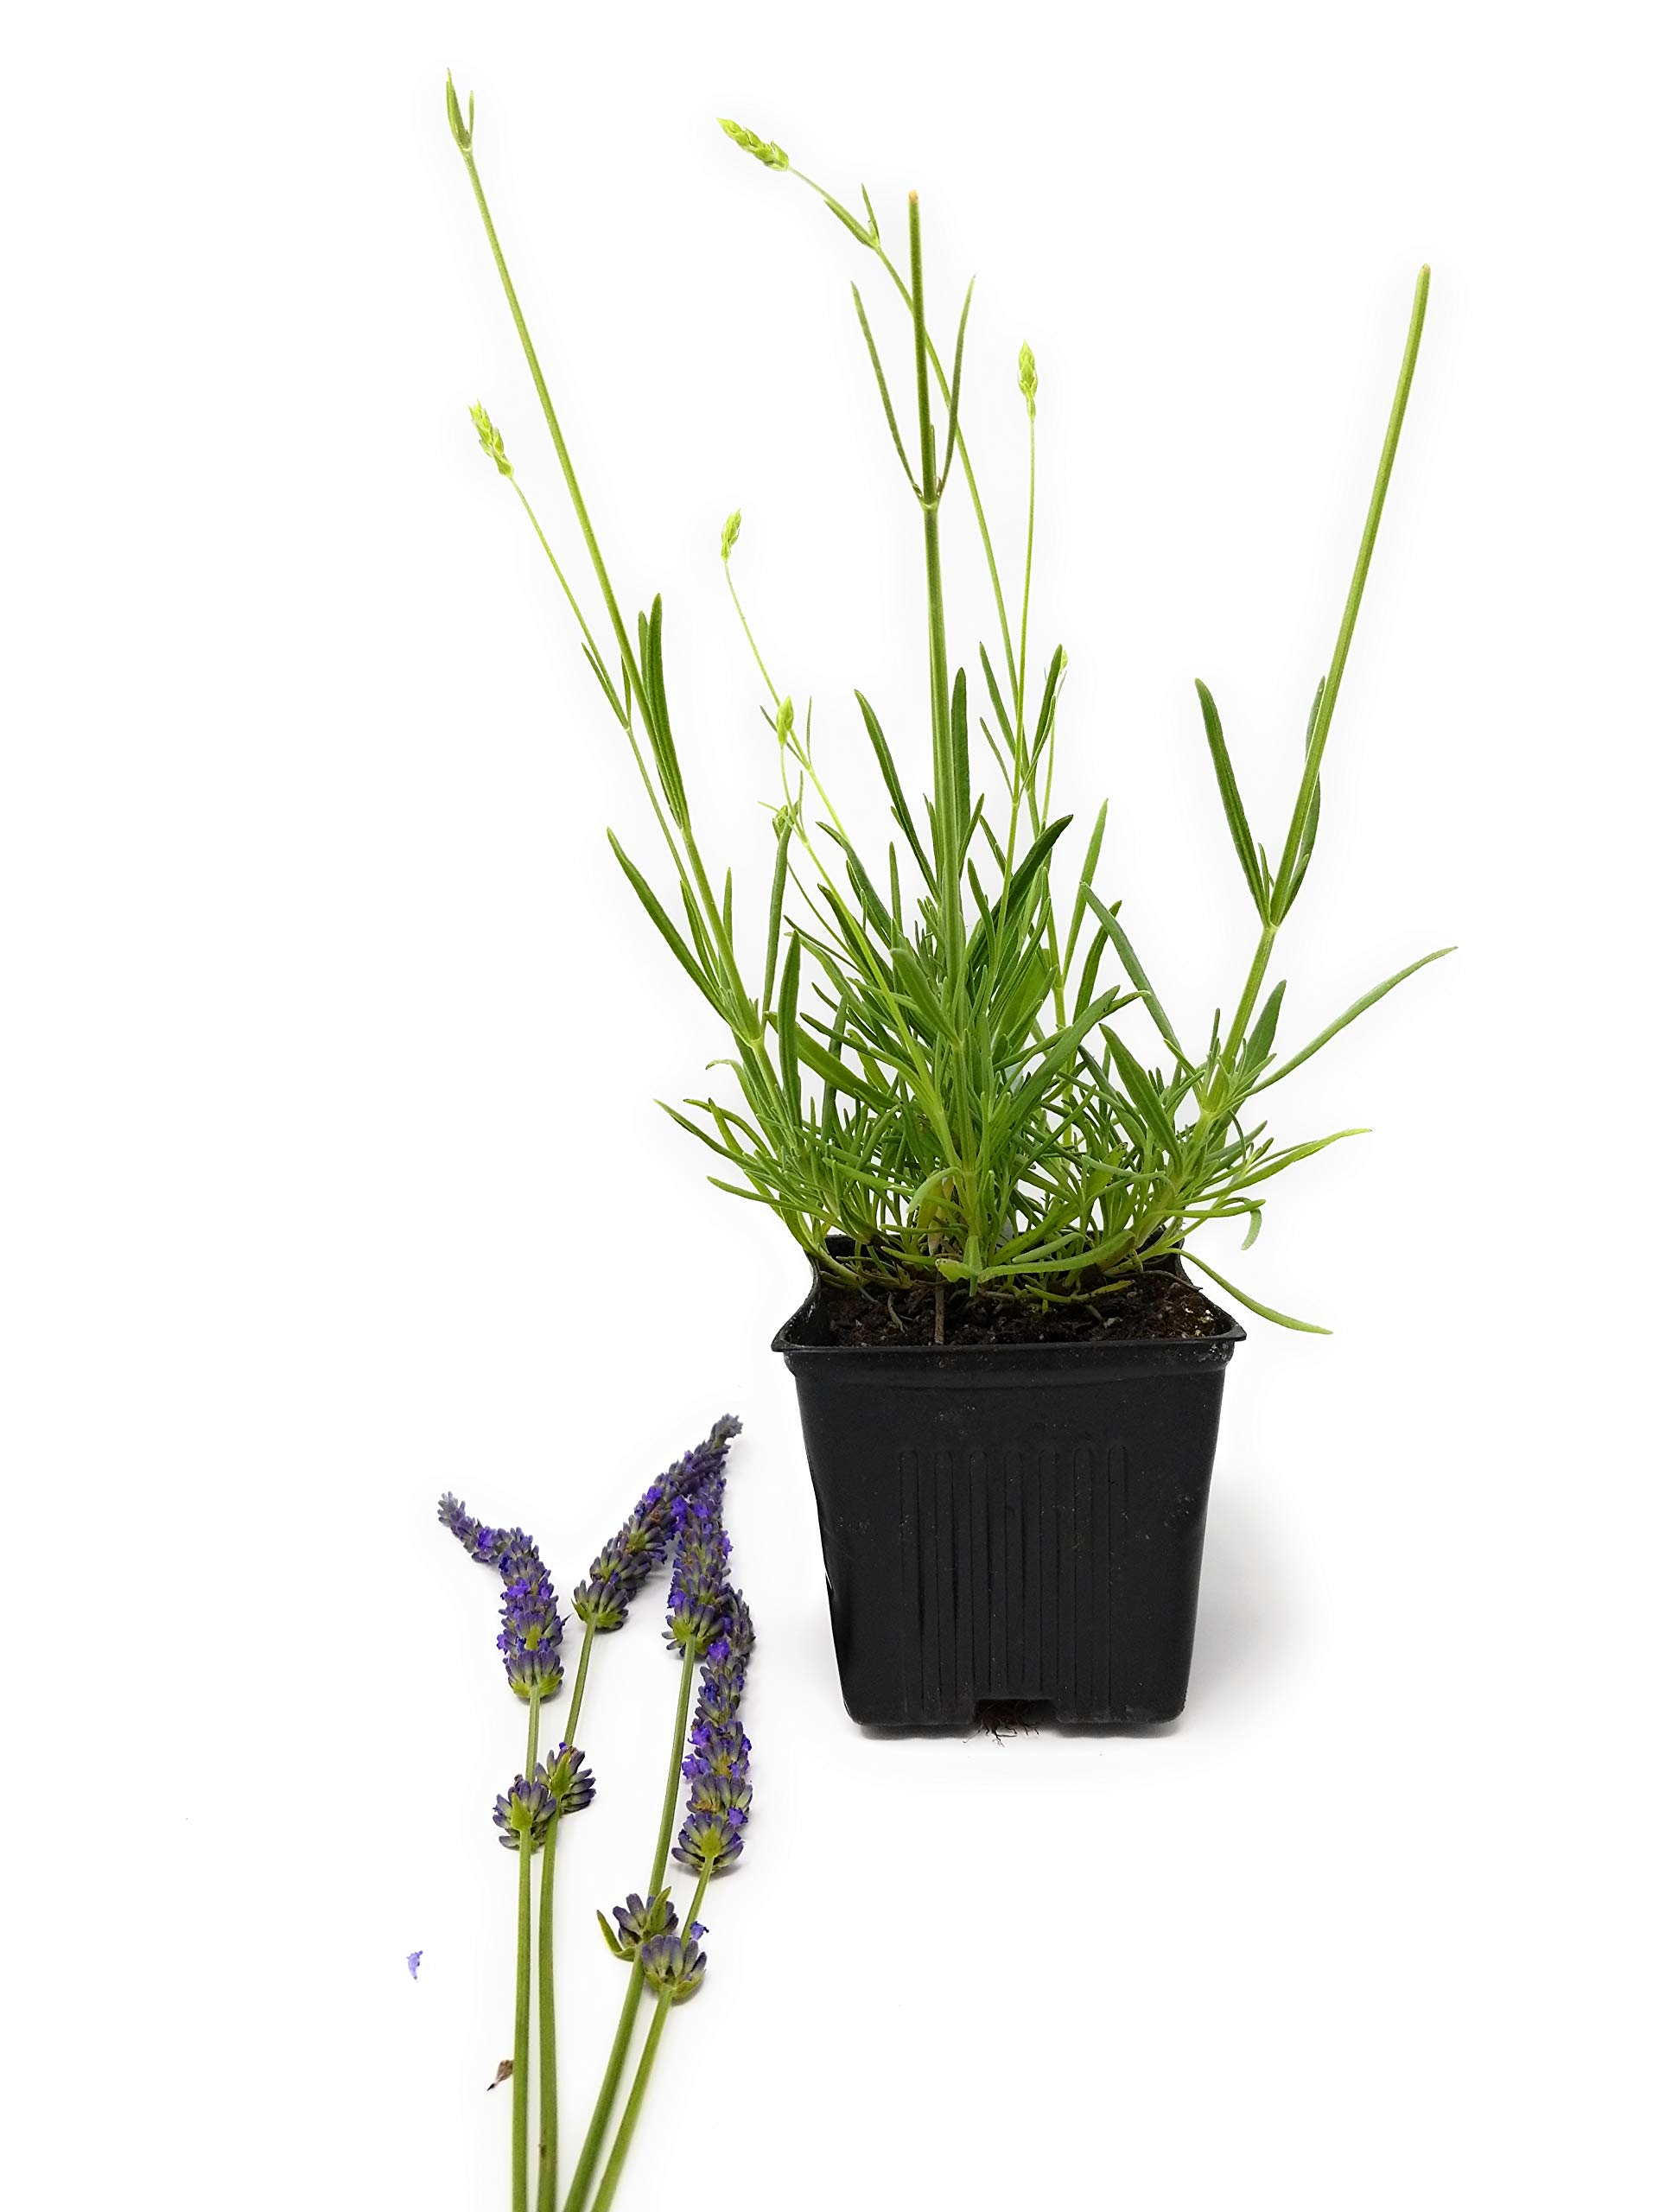 Findlavender - Lavender Plant Phenomenal - 4'' Size Pots - Zones 5-10 - Bee Friendly - Attract Butterfly - Evergreen Plant - 8 Live Plants